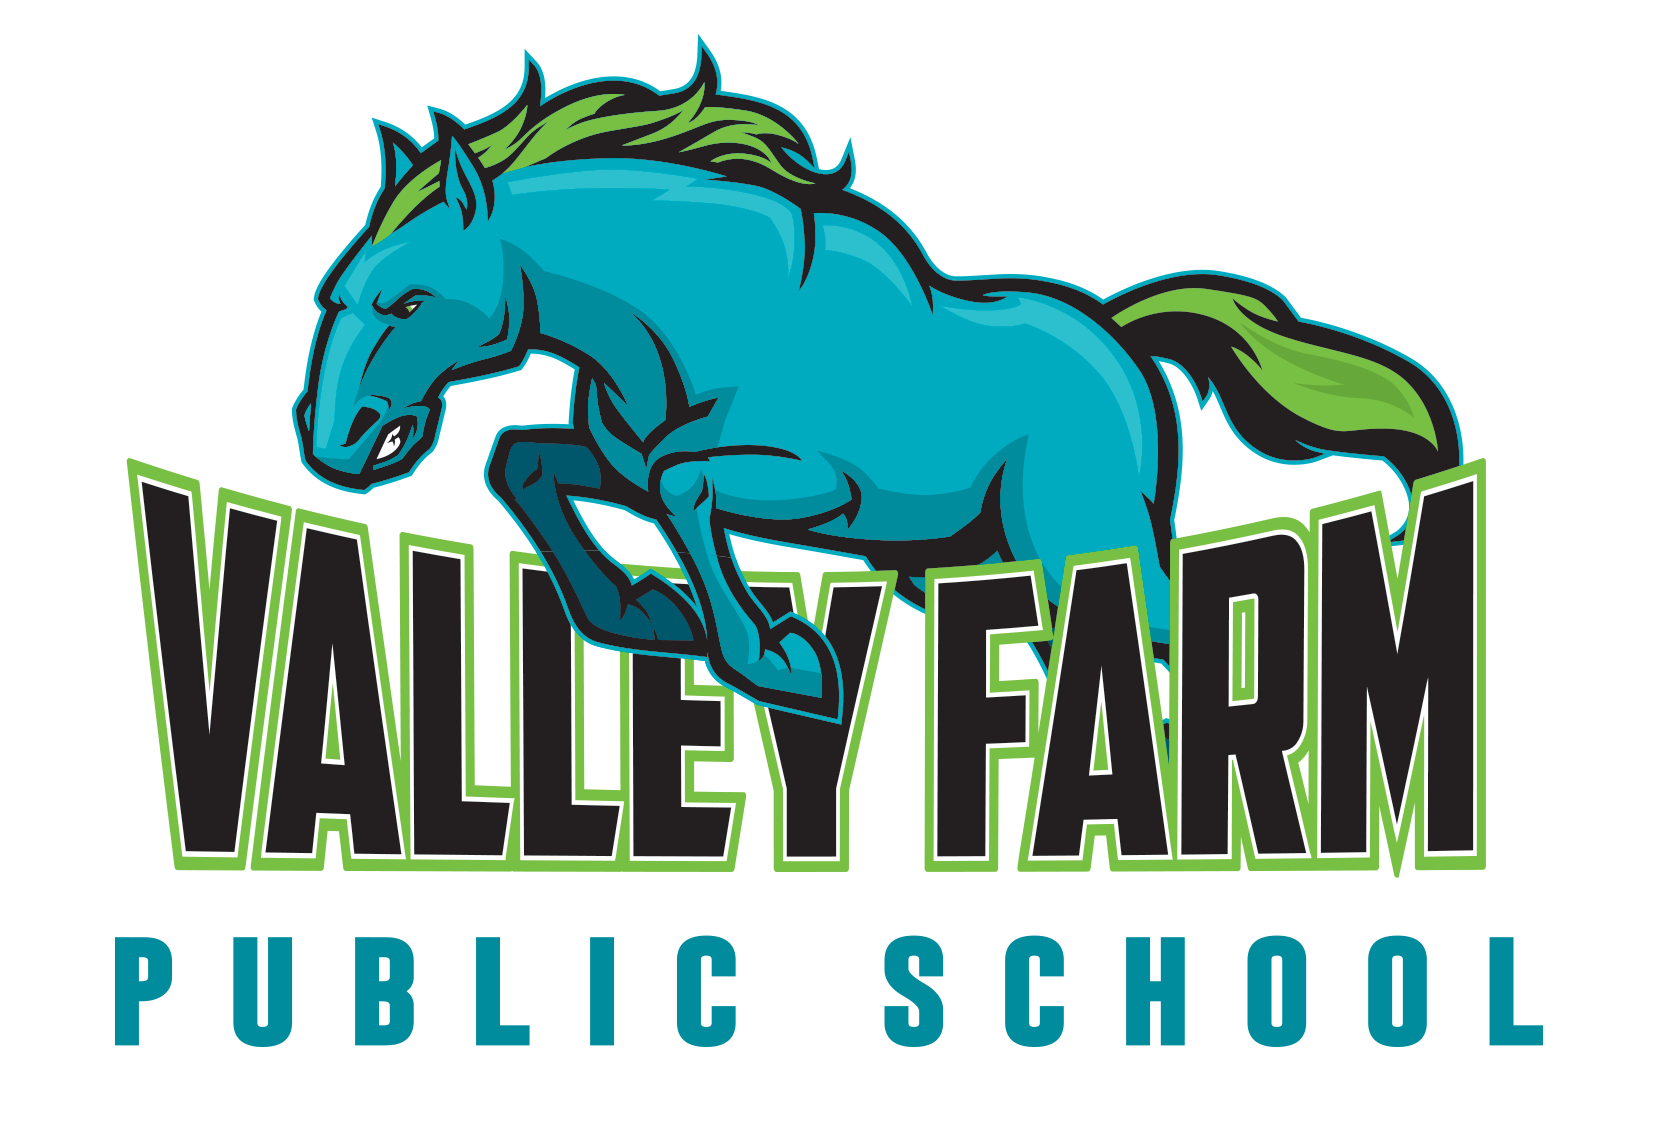 Valley Farm Public School logo